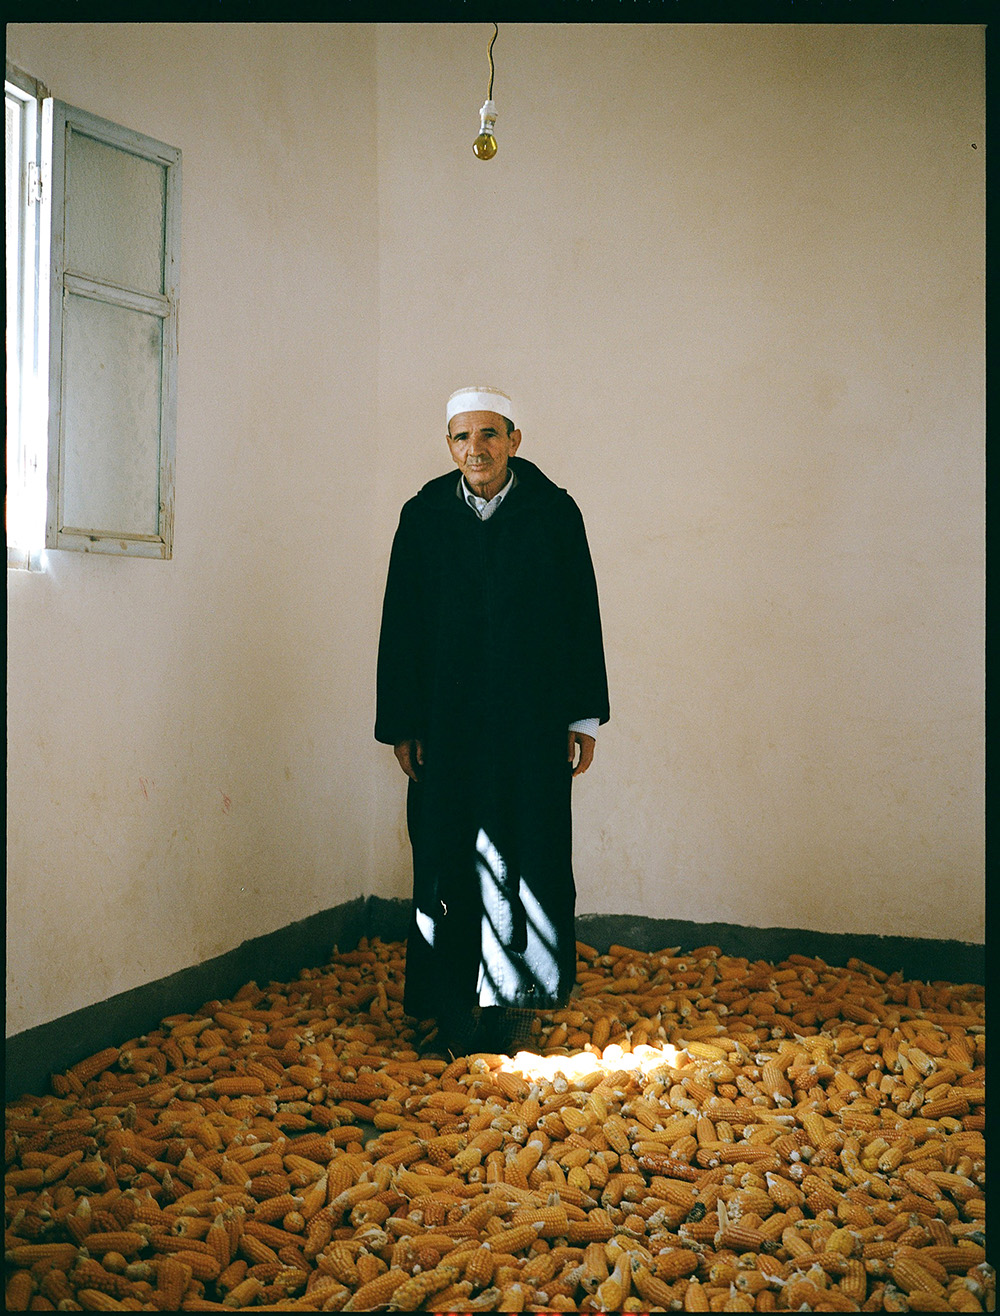 Lindsay Photo Essay | Morocco, A Land of Vibrant Fragments | Photo by Olga de la Iglesia